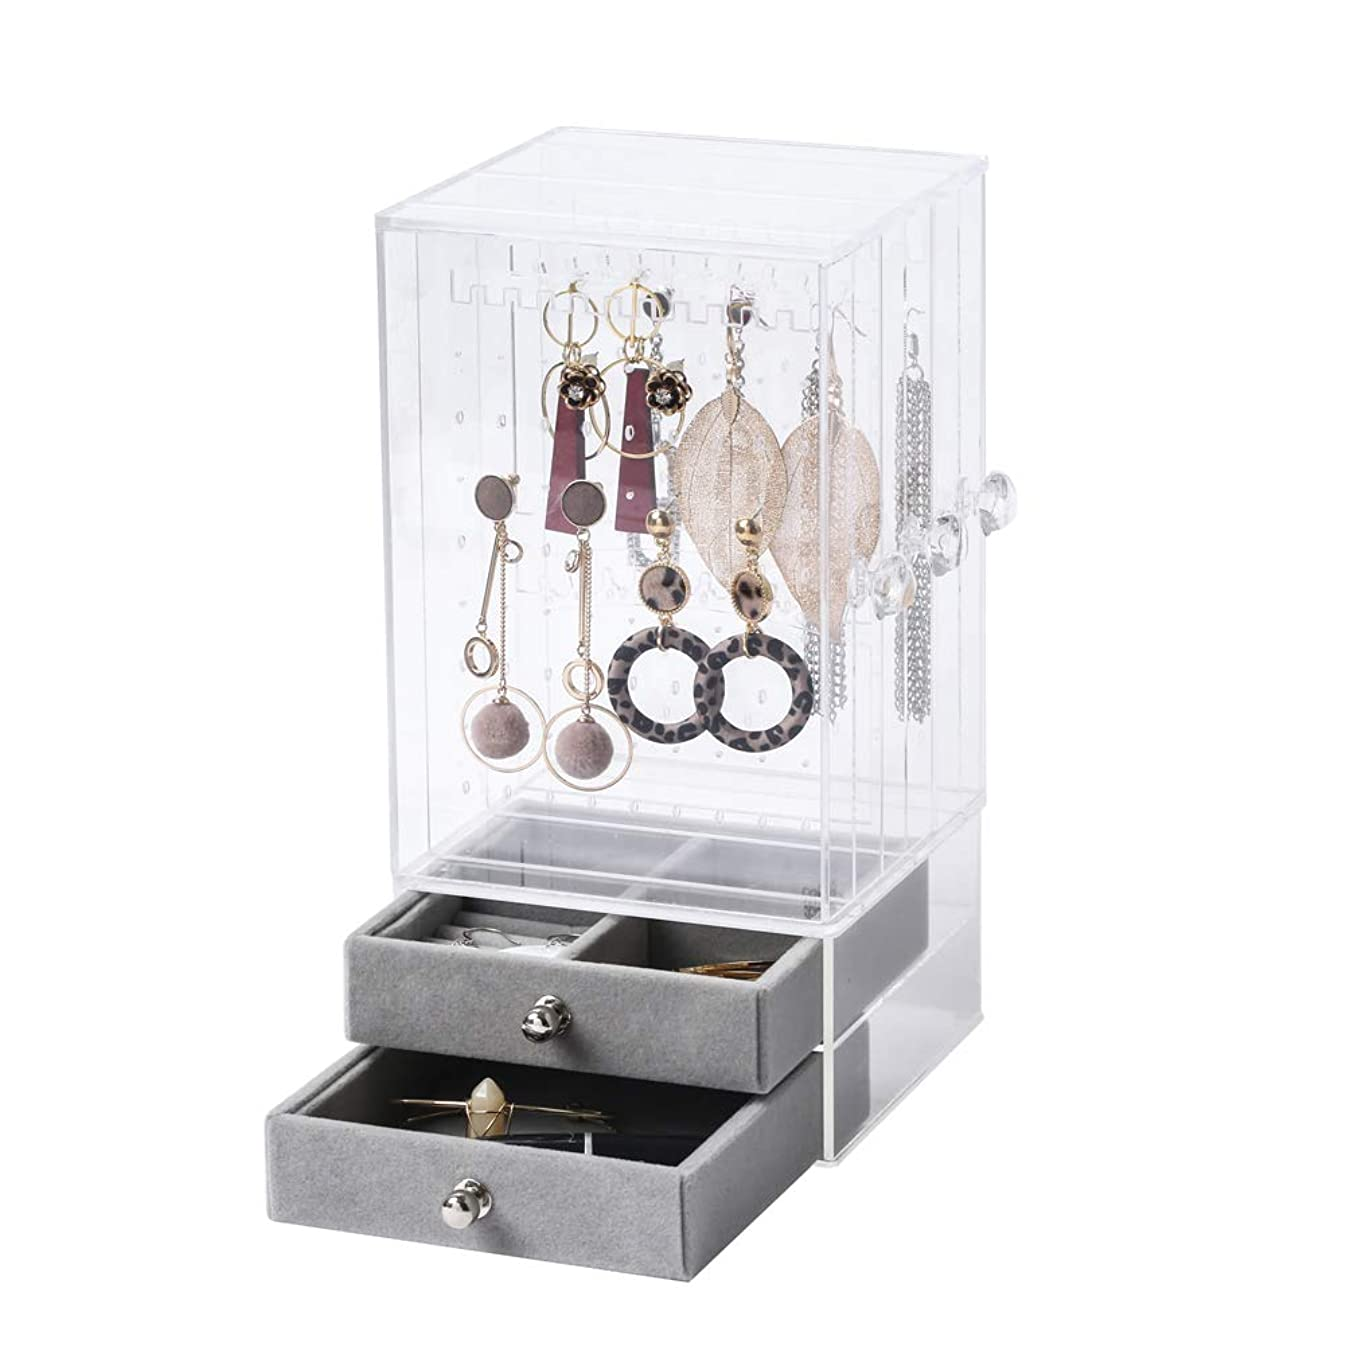 BiuTee Jewelry Box for Women Jewelry Organizer Necklace Earrings & Bracelet Hanger Acrylic Display Storage Case Decor Gifts for Girls, Large